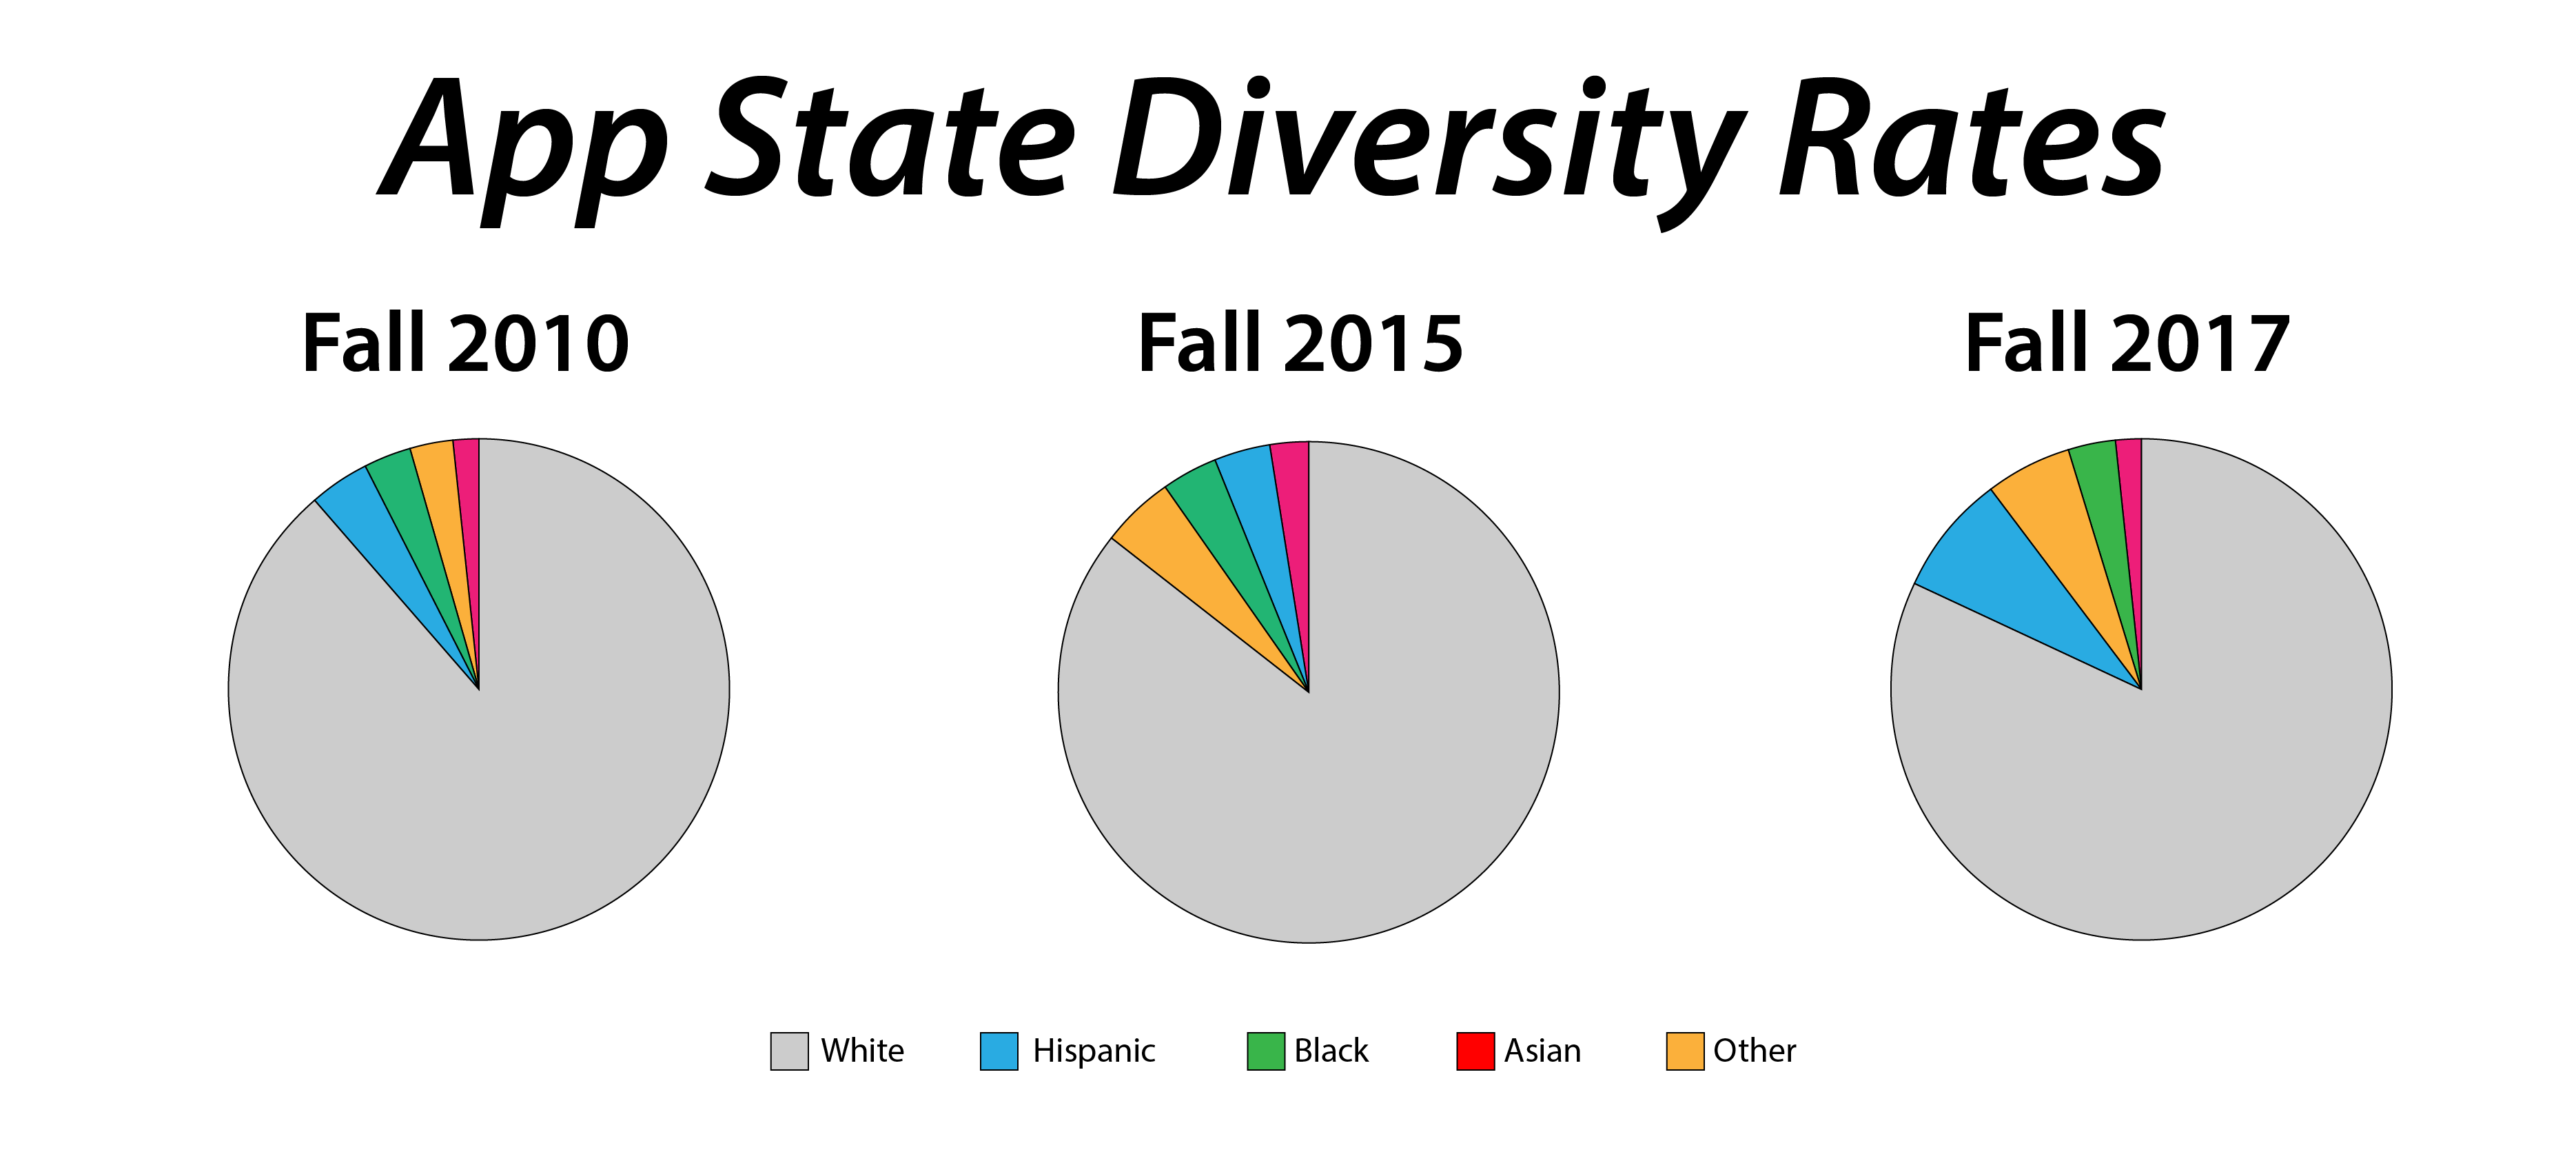 Statistics measuring Appalachian State's levels of diversity the past few years.